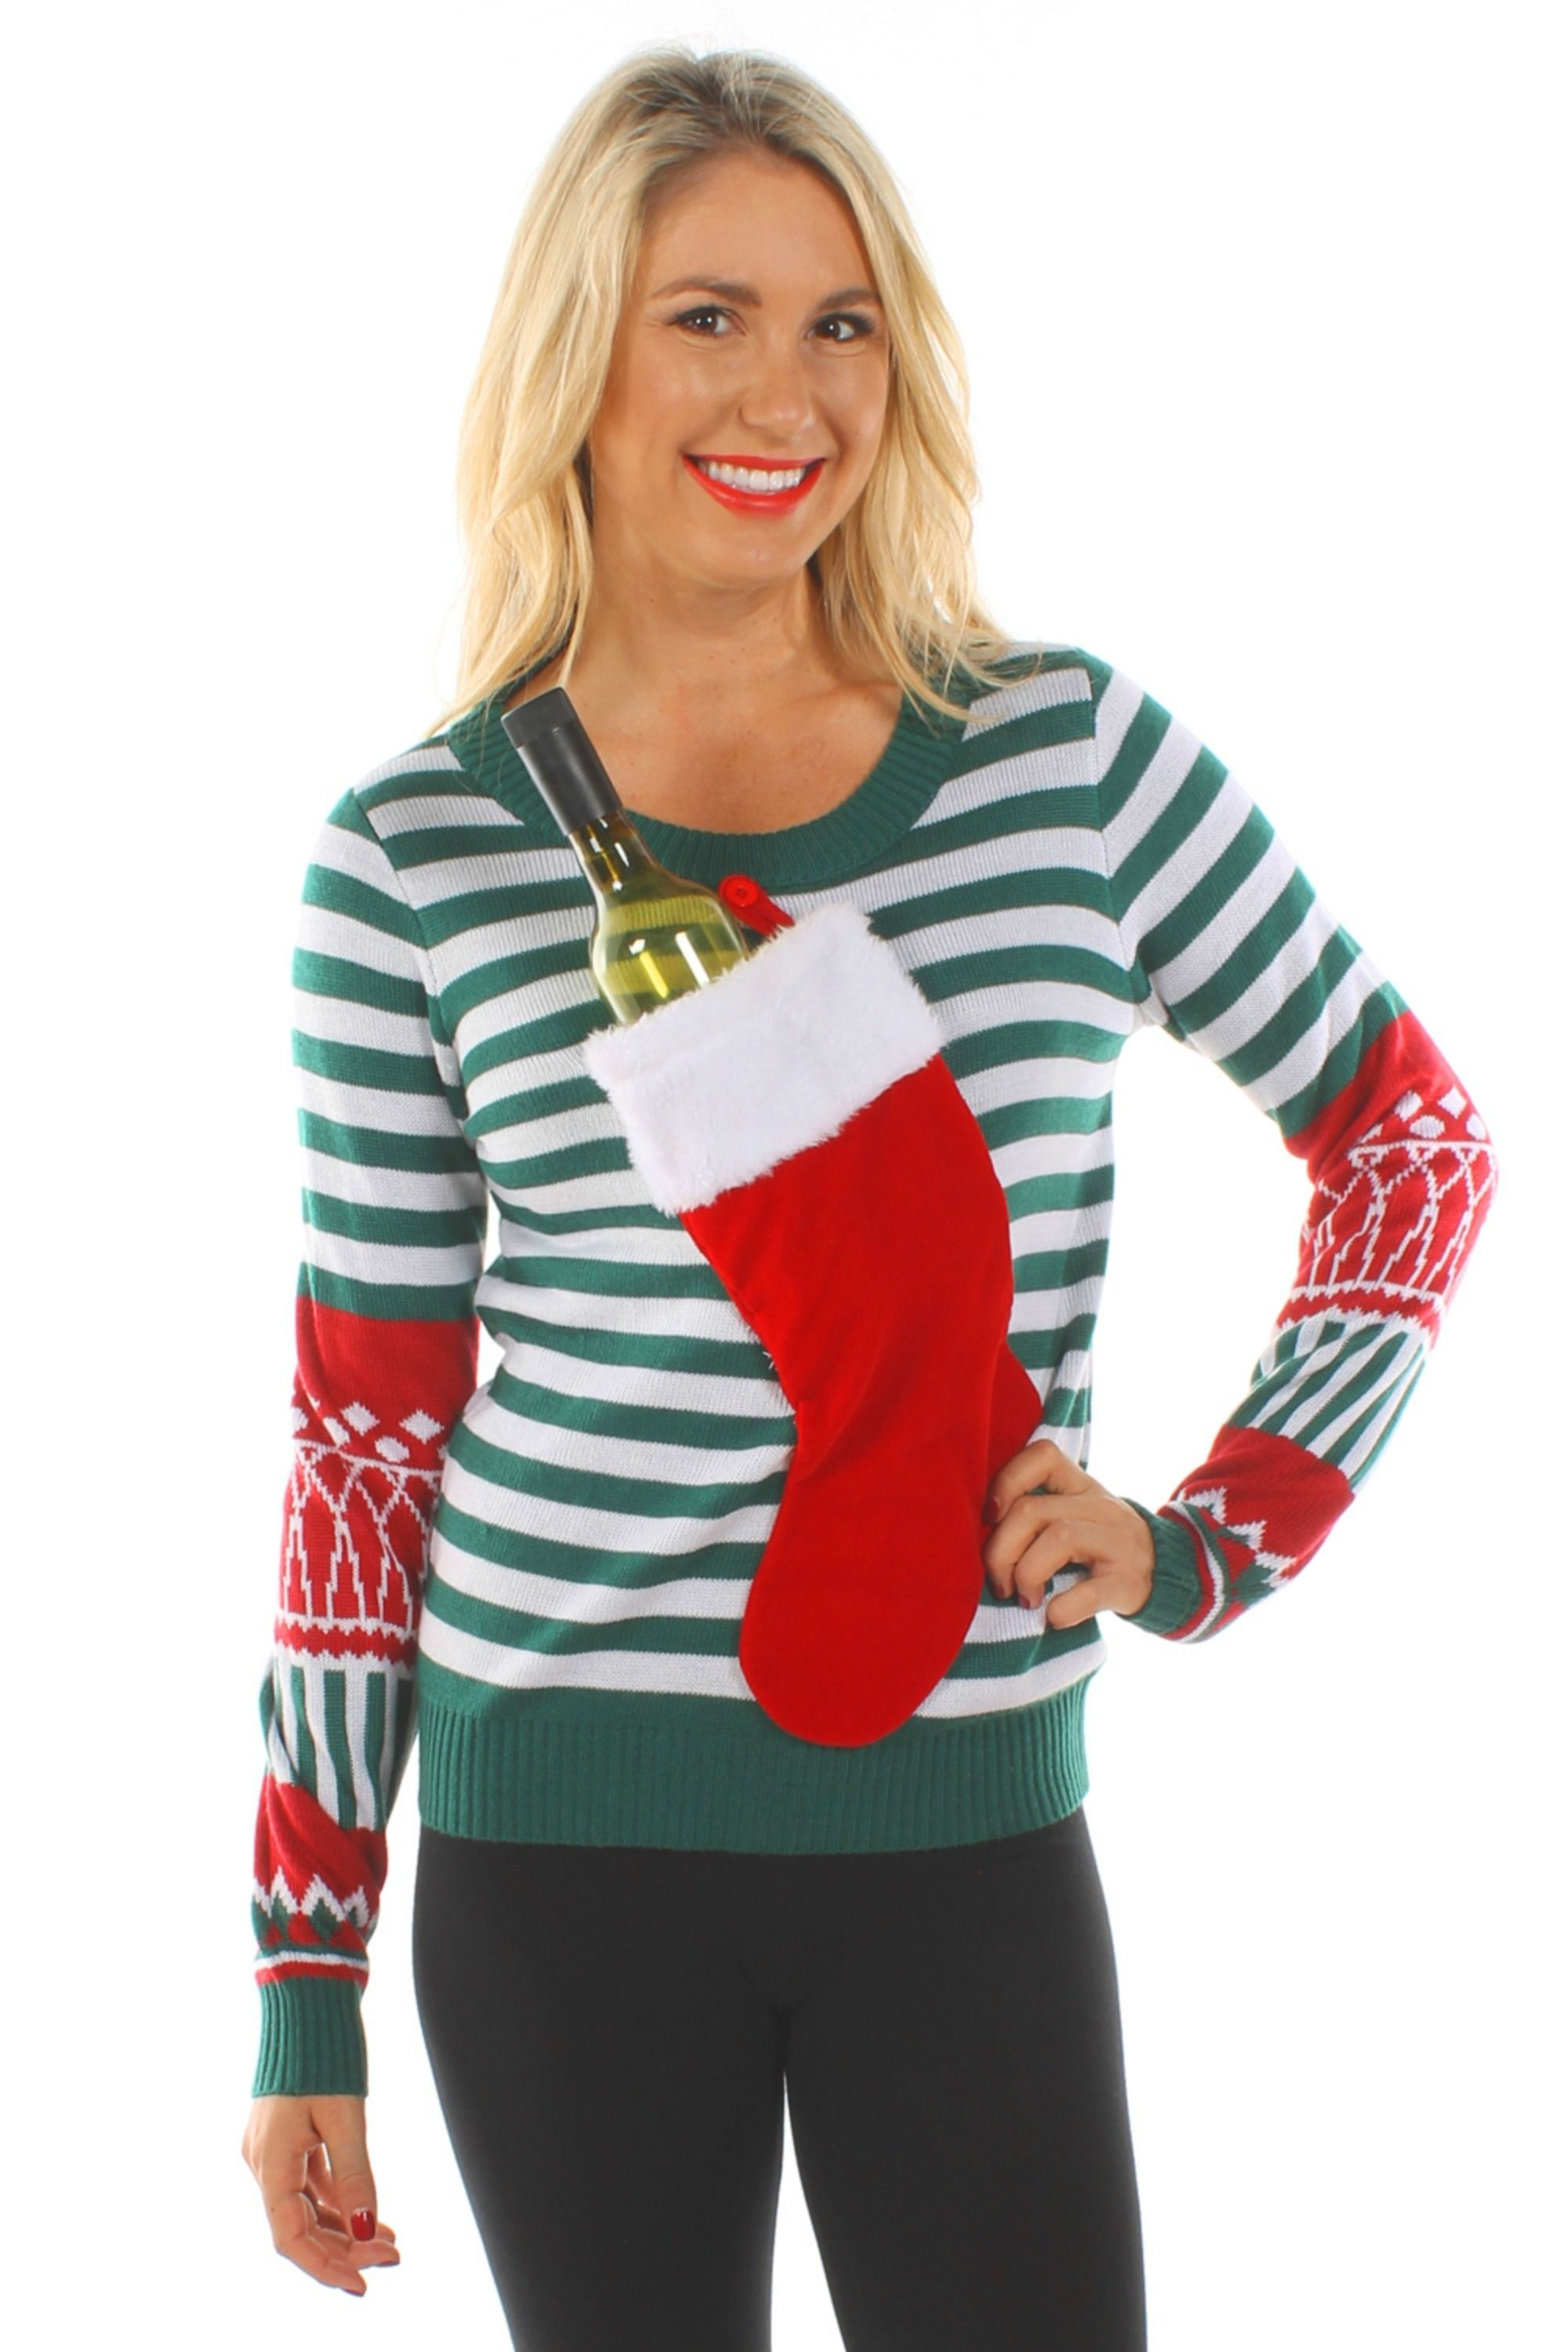 48f104b91332 22 Ugly Christmas Sweater Ideas to Buy and DIY - Tacky Christmas Sweaters  for Women